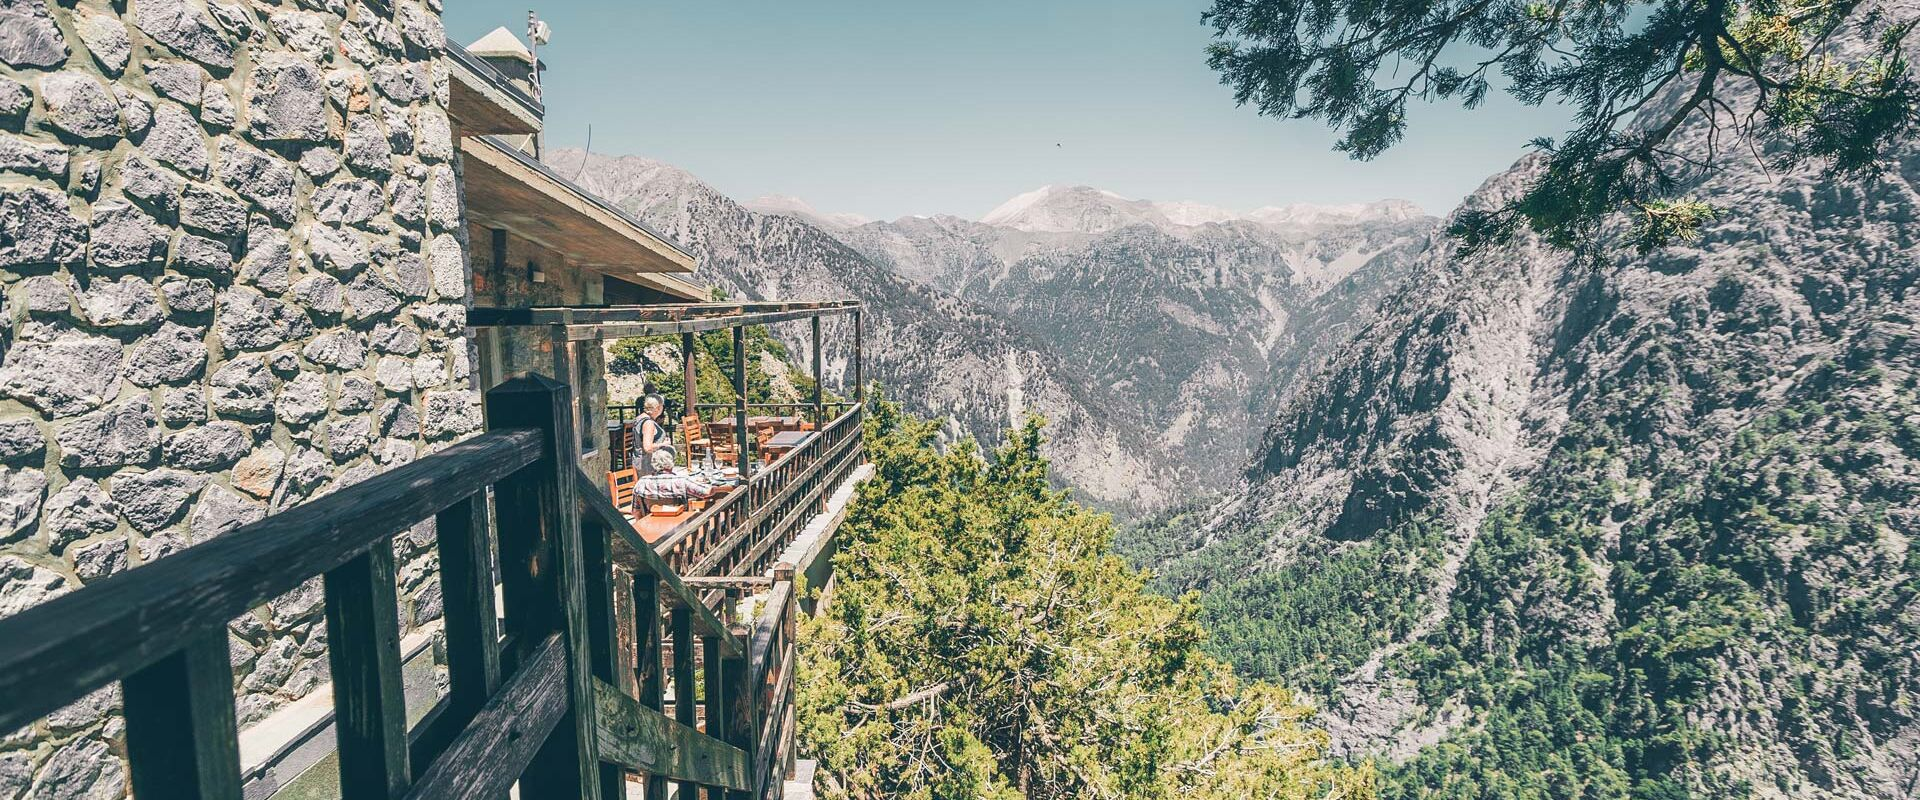 There's no better build-up to the hike than the view of the gorge from the taverna at Xyloskalo, at an altitude of 1,200m